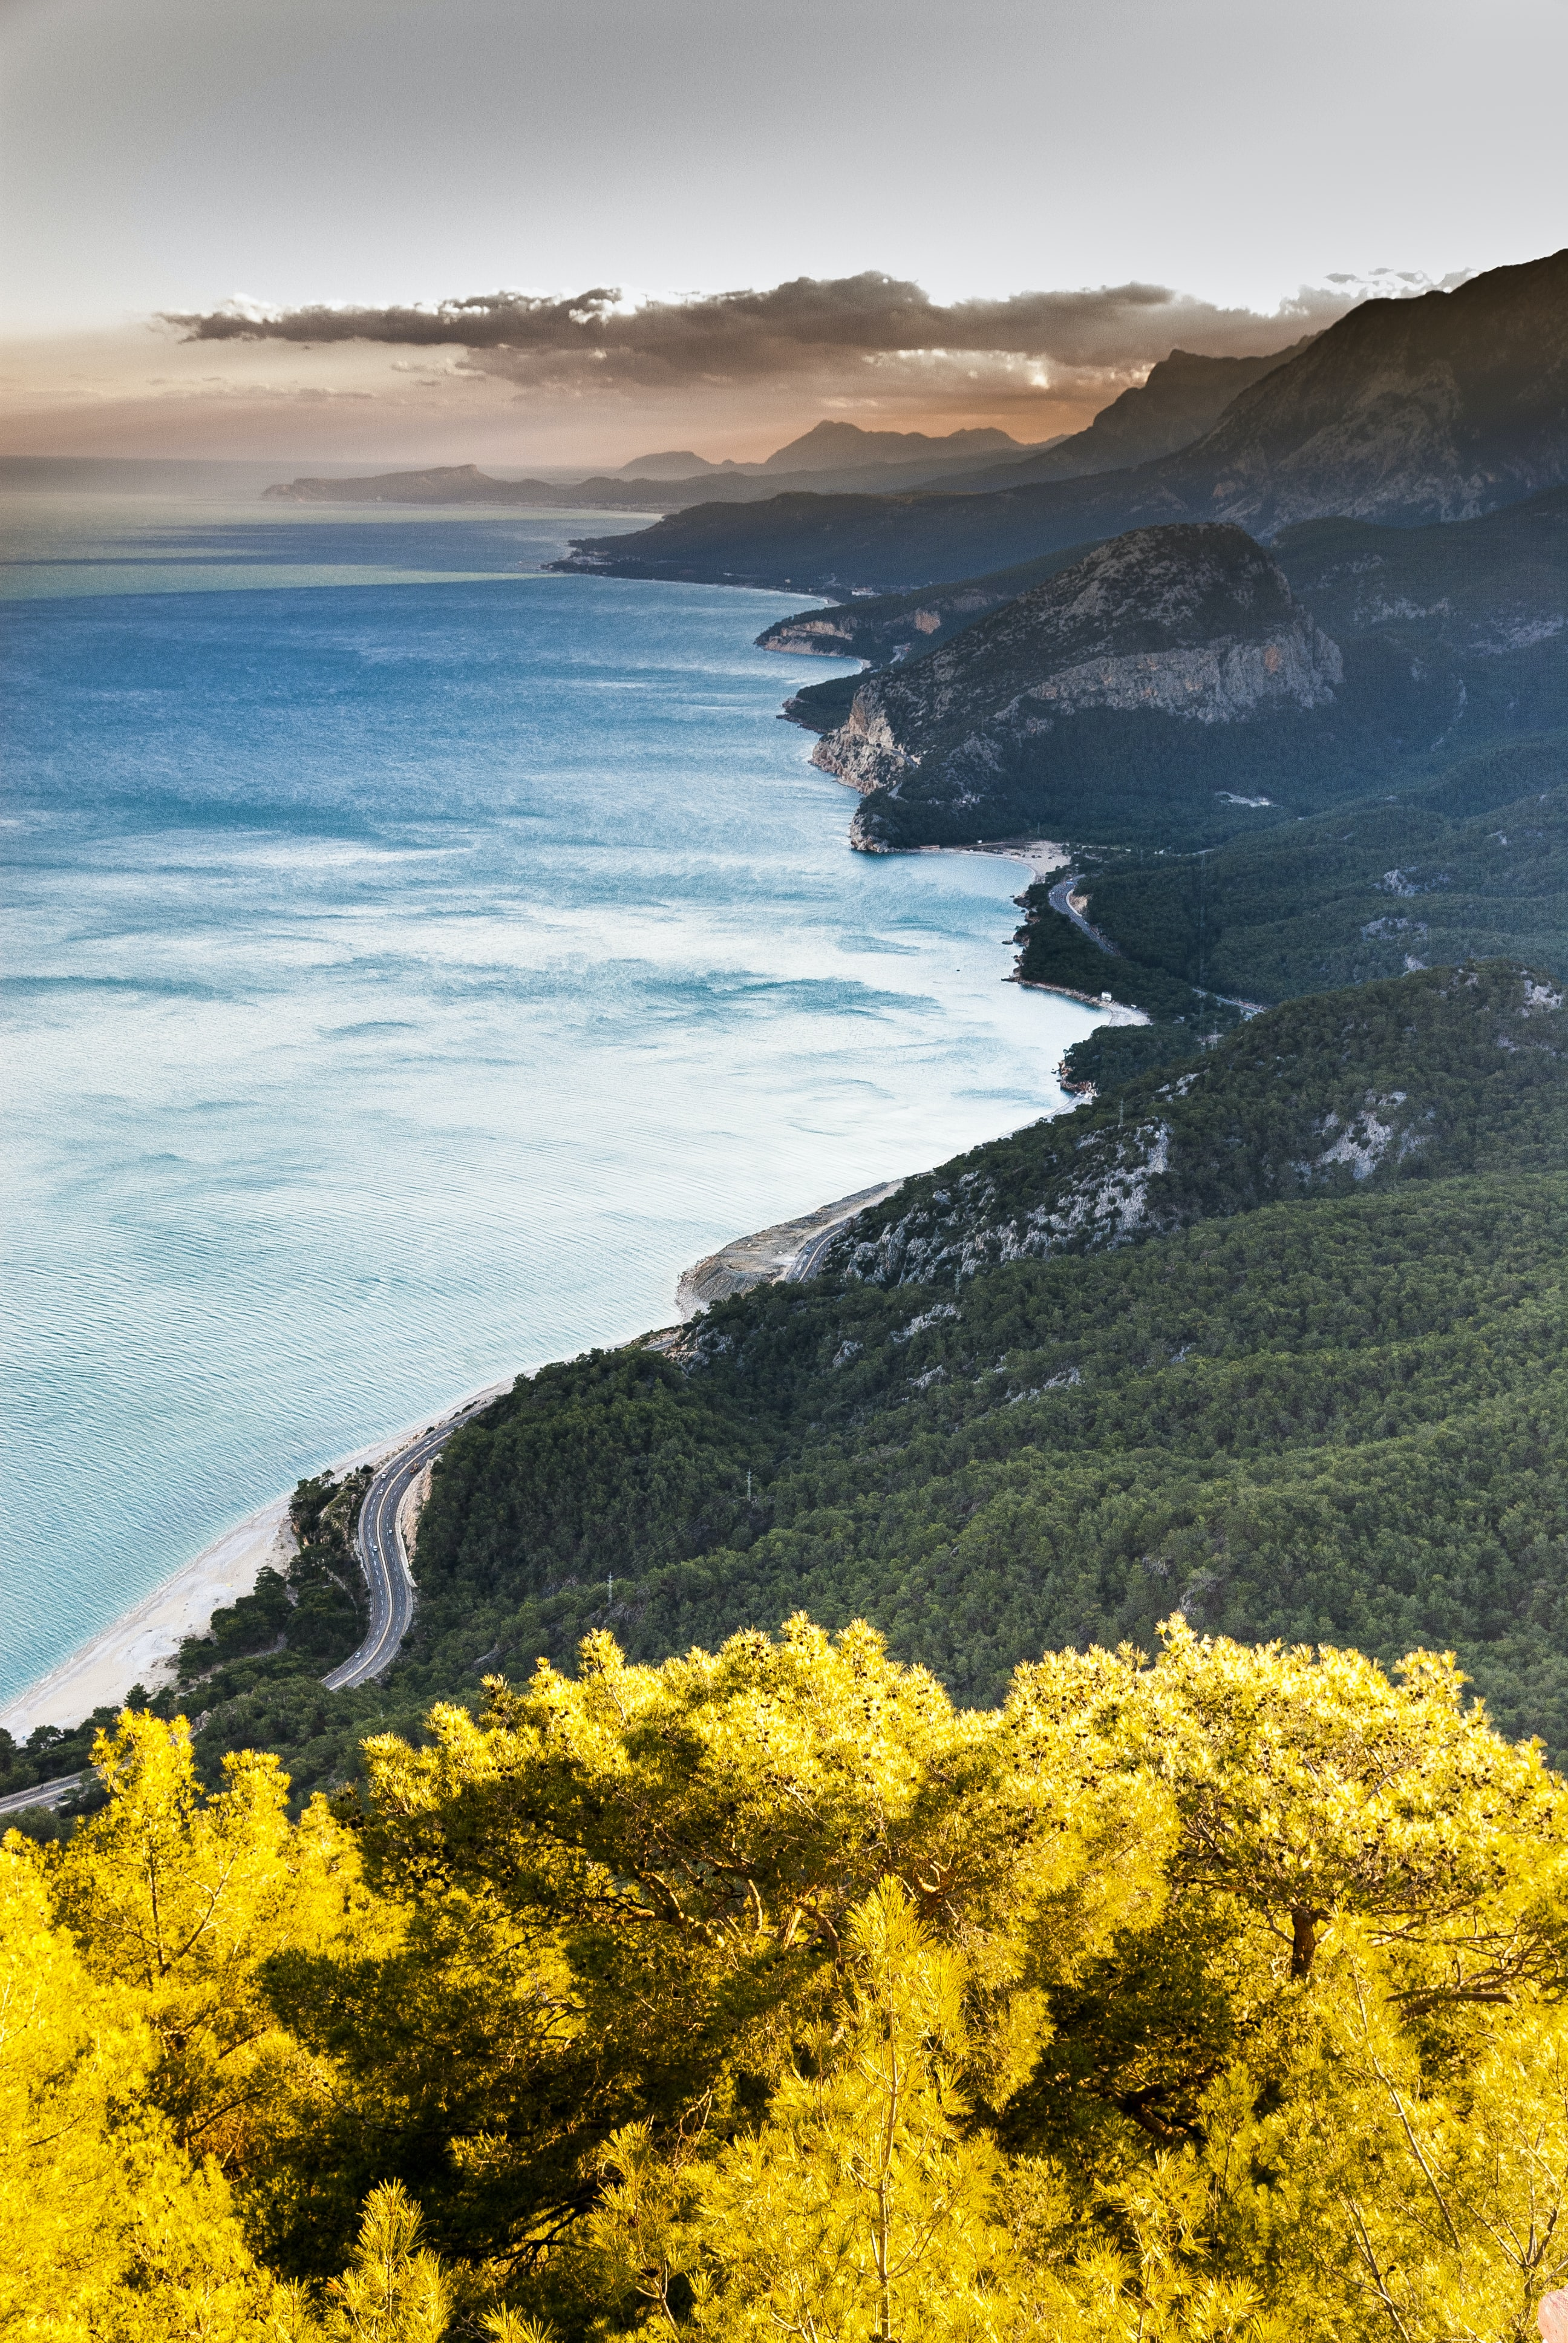 Hilly green shoreline with the winding road at Antalya